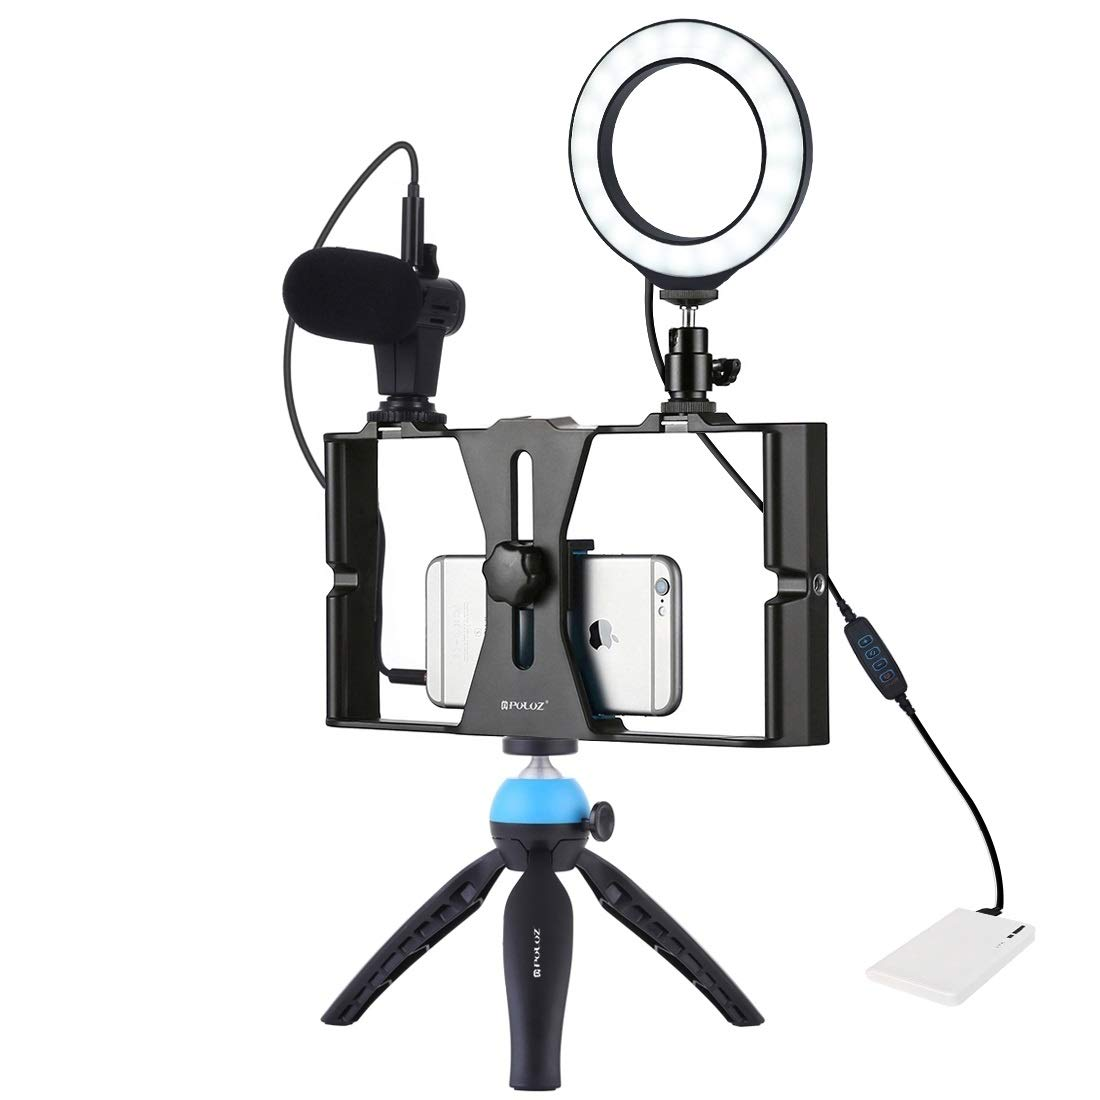 4 in 1 Vlogging Live Broadcast Smartphone Video Rig + 4.7 inch 12cm Ring LED Selfie Light Kits with Microphone + Tripod Mount + Cold Shoe Tripod Head for iPhone, Galaxy, Huawei, Xiaomi, HTC, LG, Googl by SHIFENX